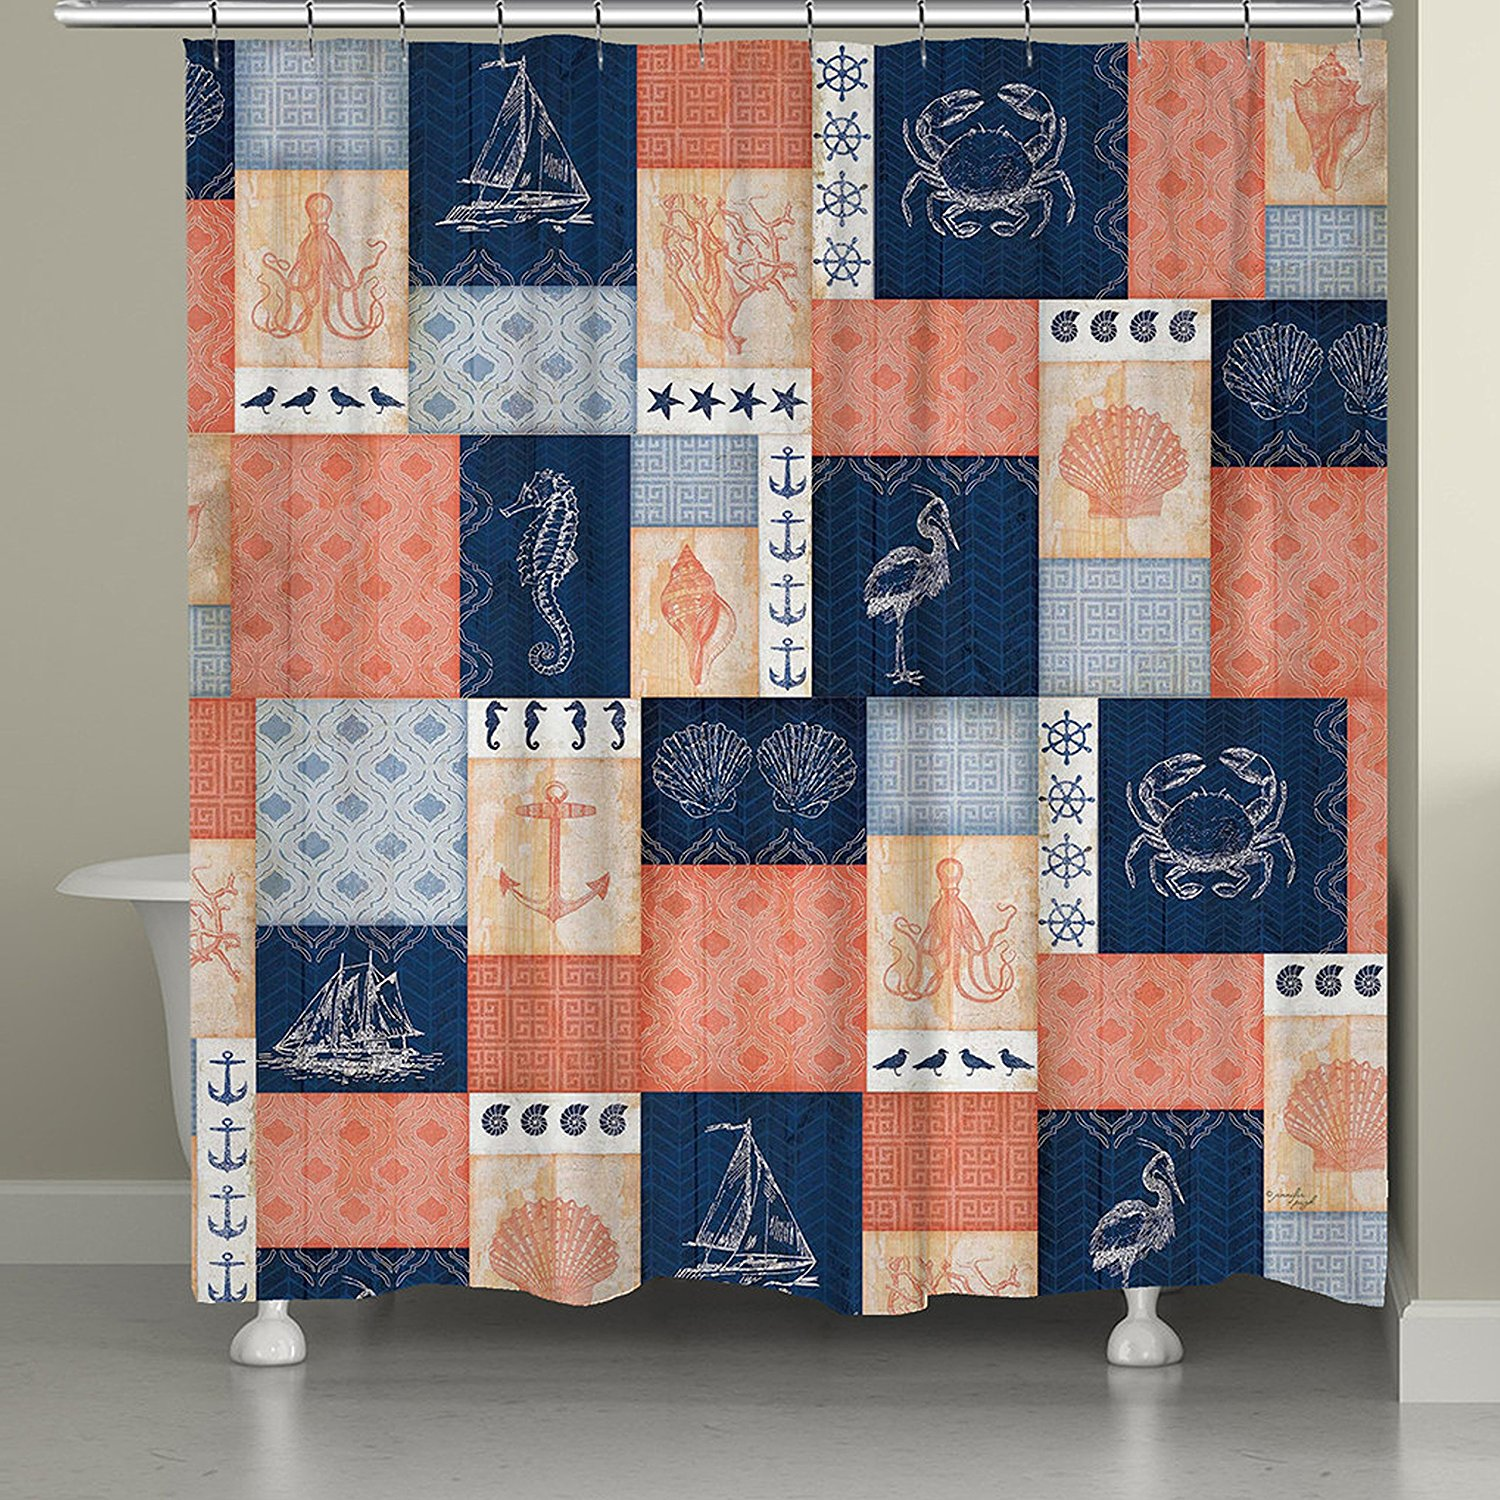 Get Quotations Laural Home Coral And Navy Coastal Shower Curtain 71x74 Patchwork Blue